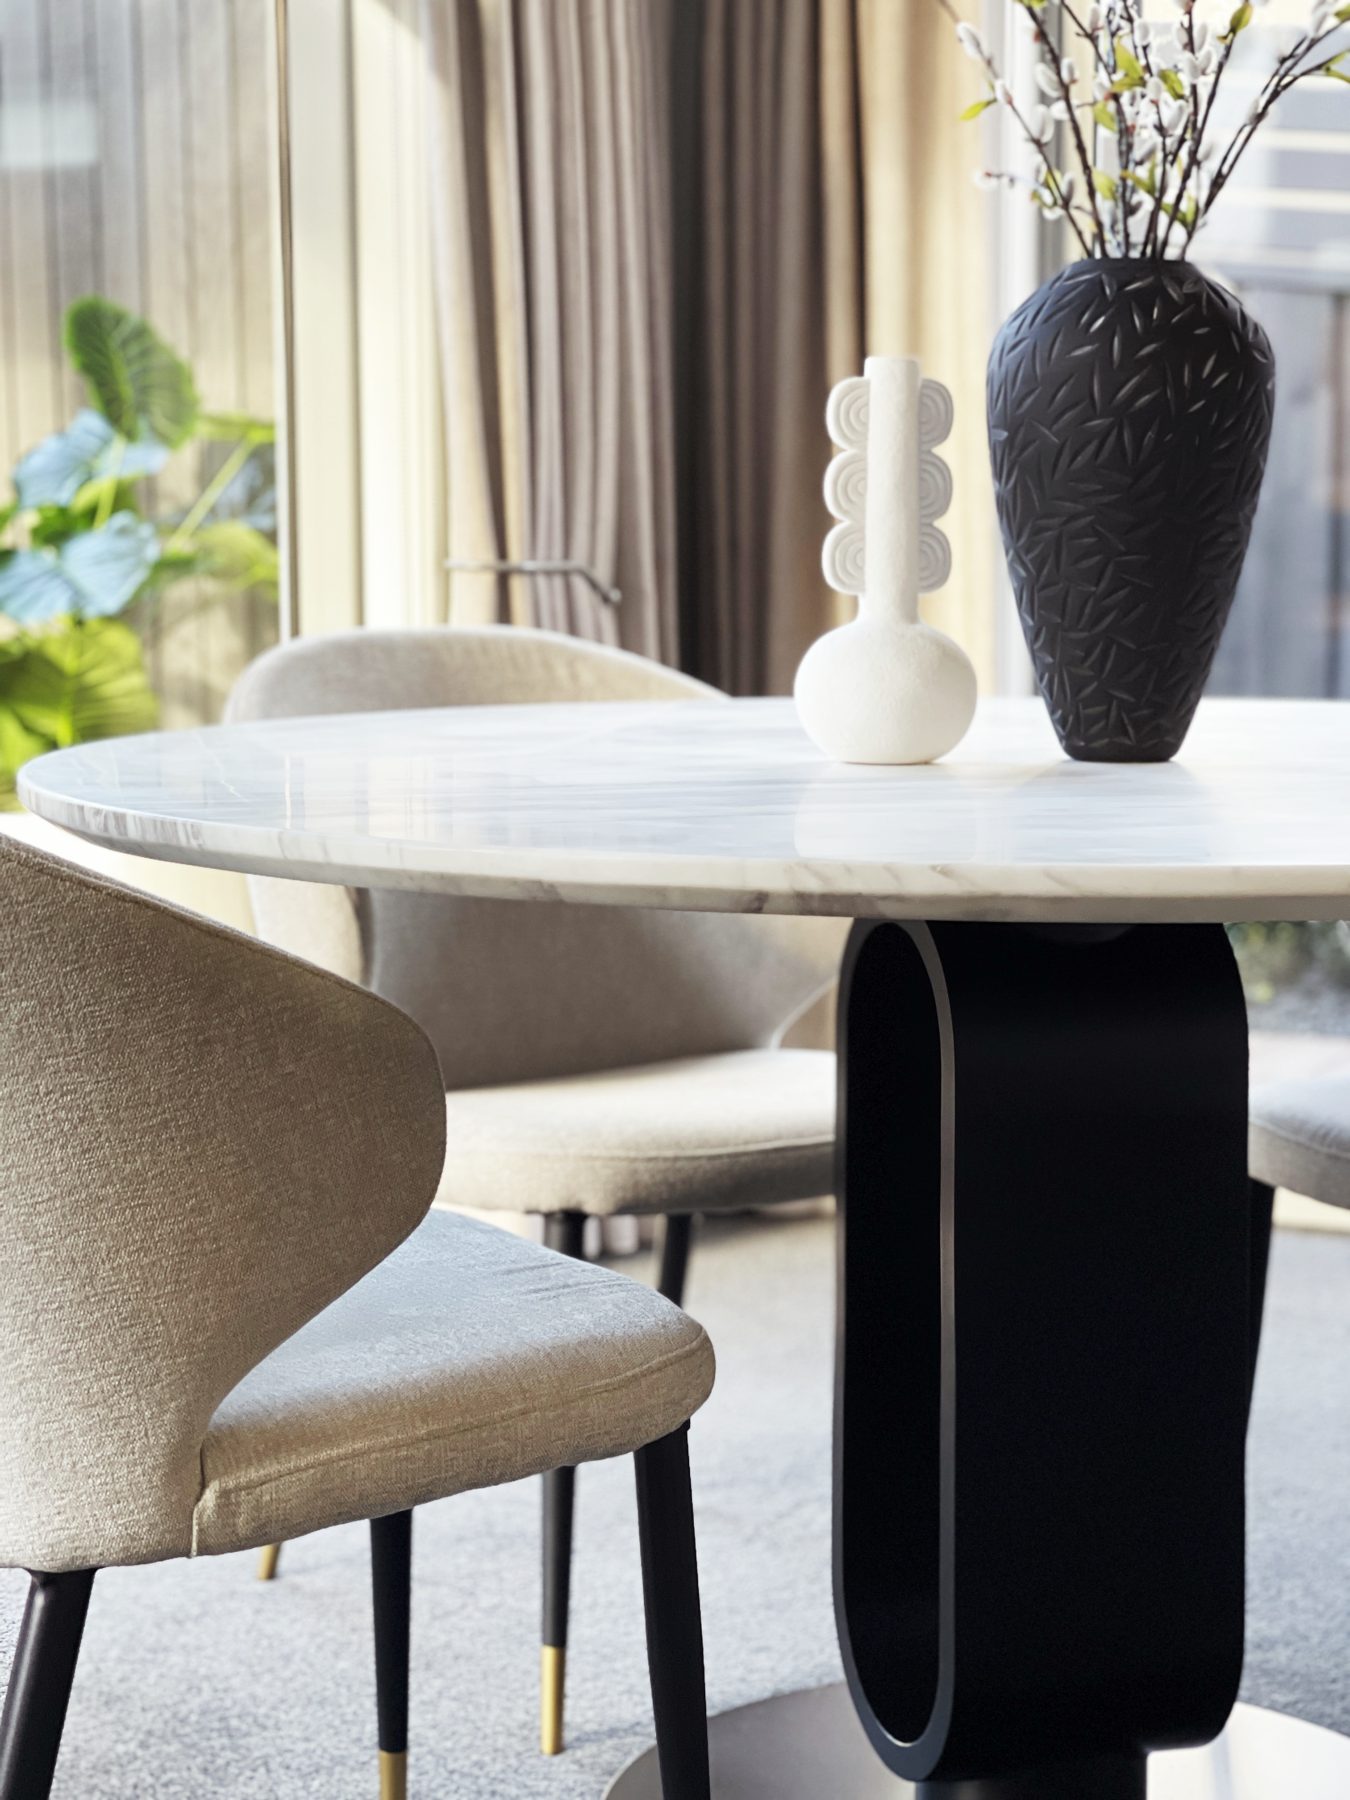 Luxury contemporary dining table and chairs with textured fabric, marble top and brushed brass highlights